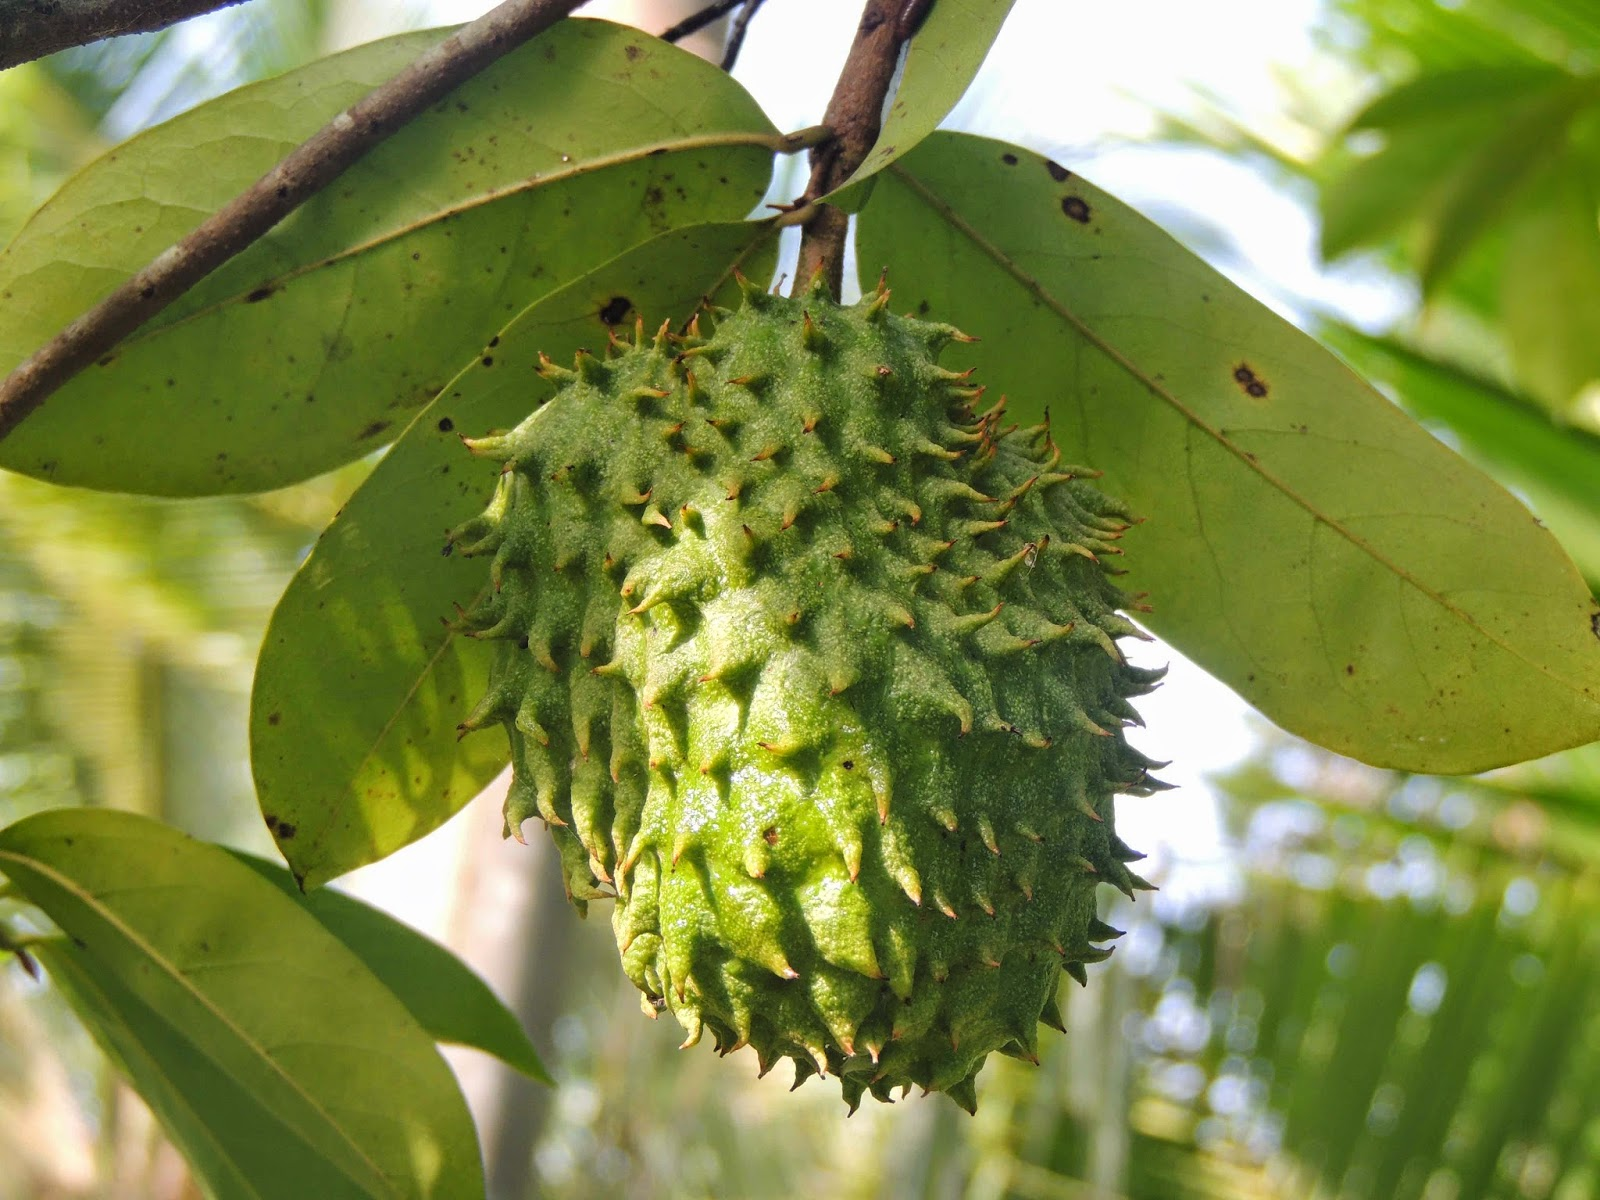 Soursop widescreen for desktop